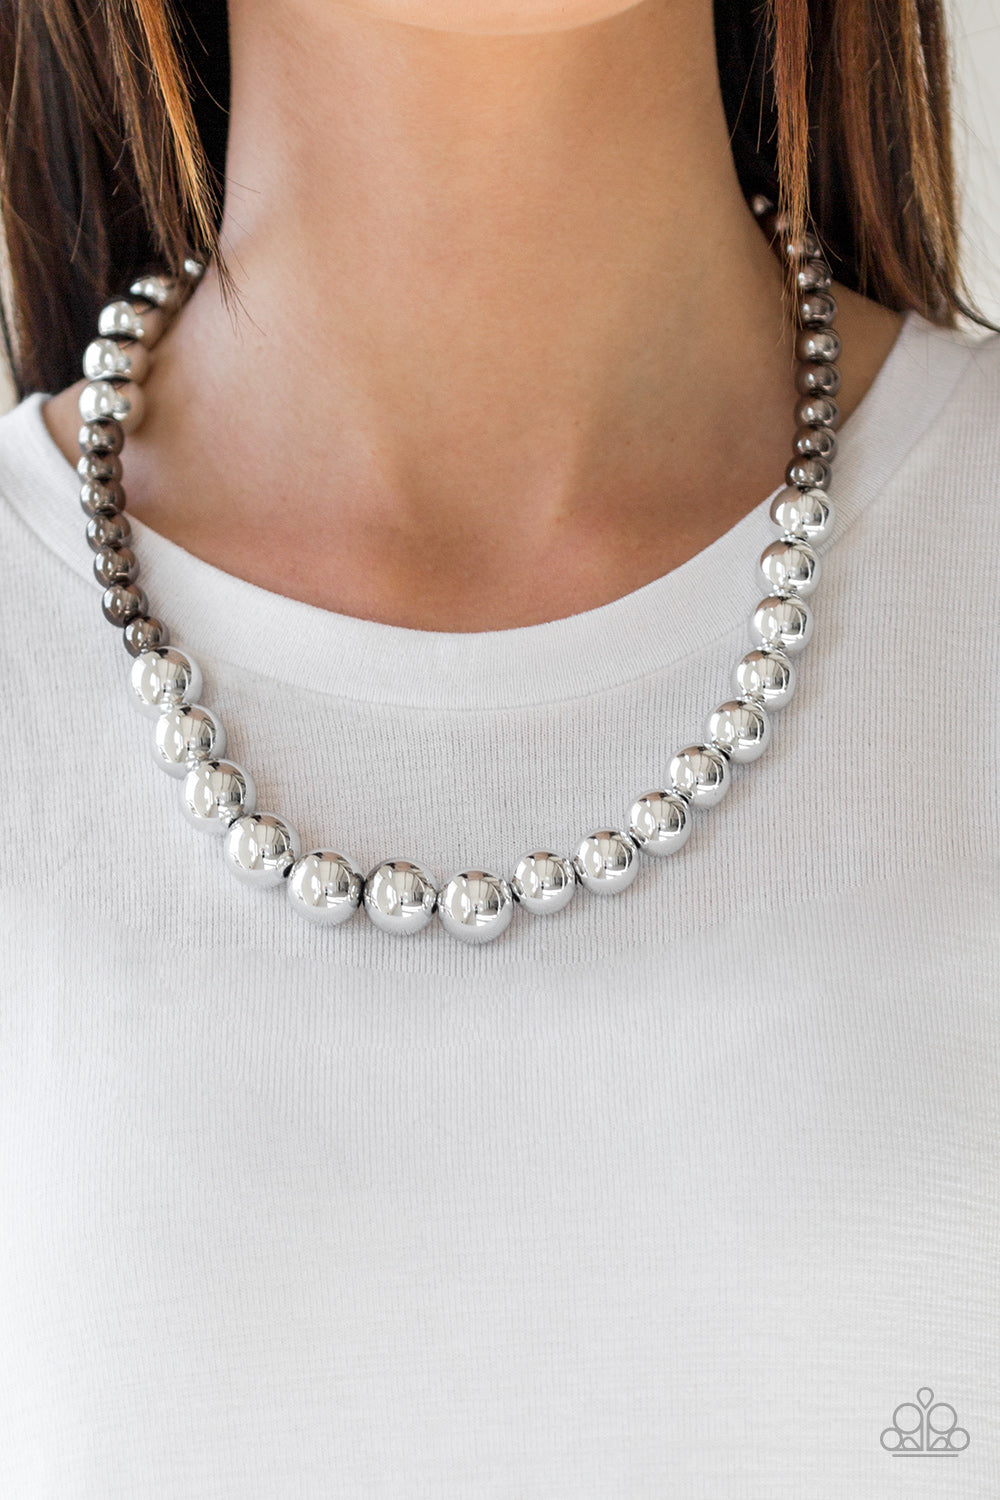 Paparazzi - Power To The People - Silver Necklace Set - Classy Jewels by Linda